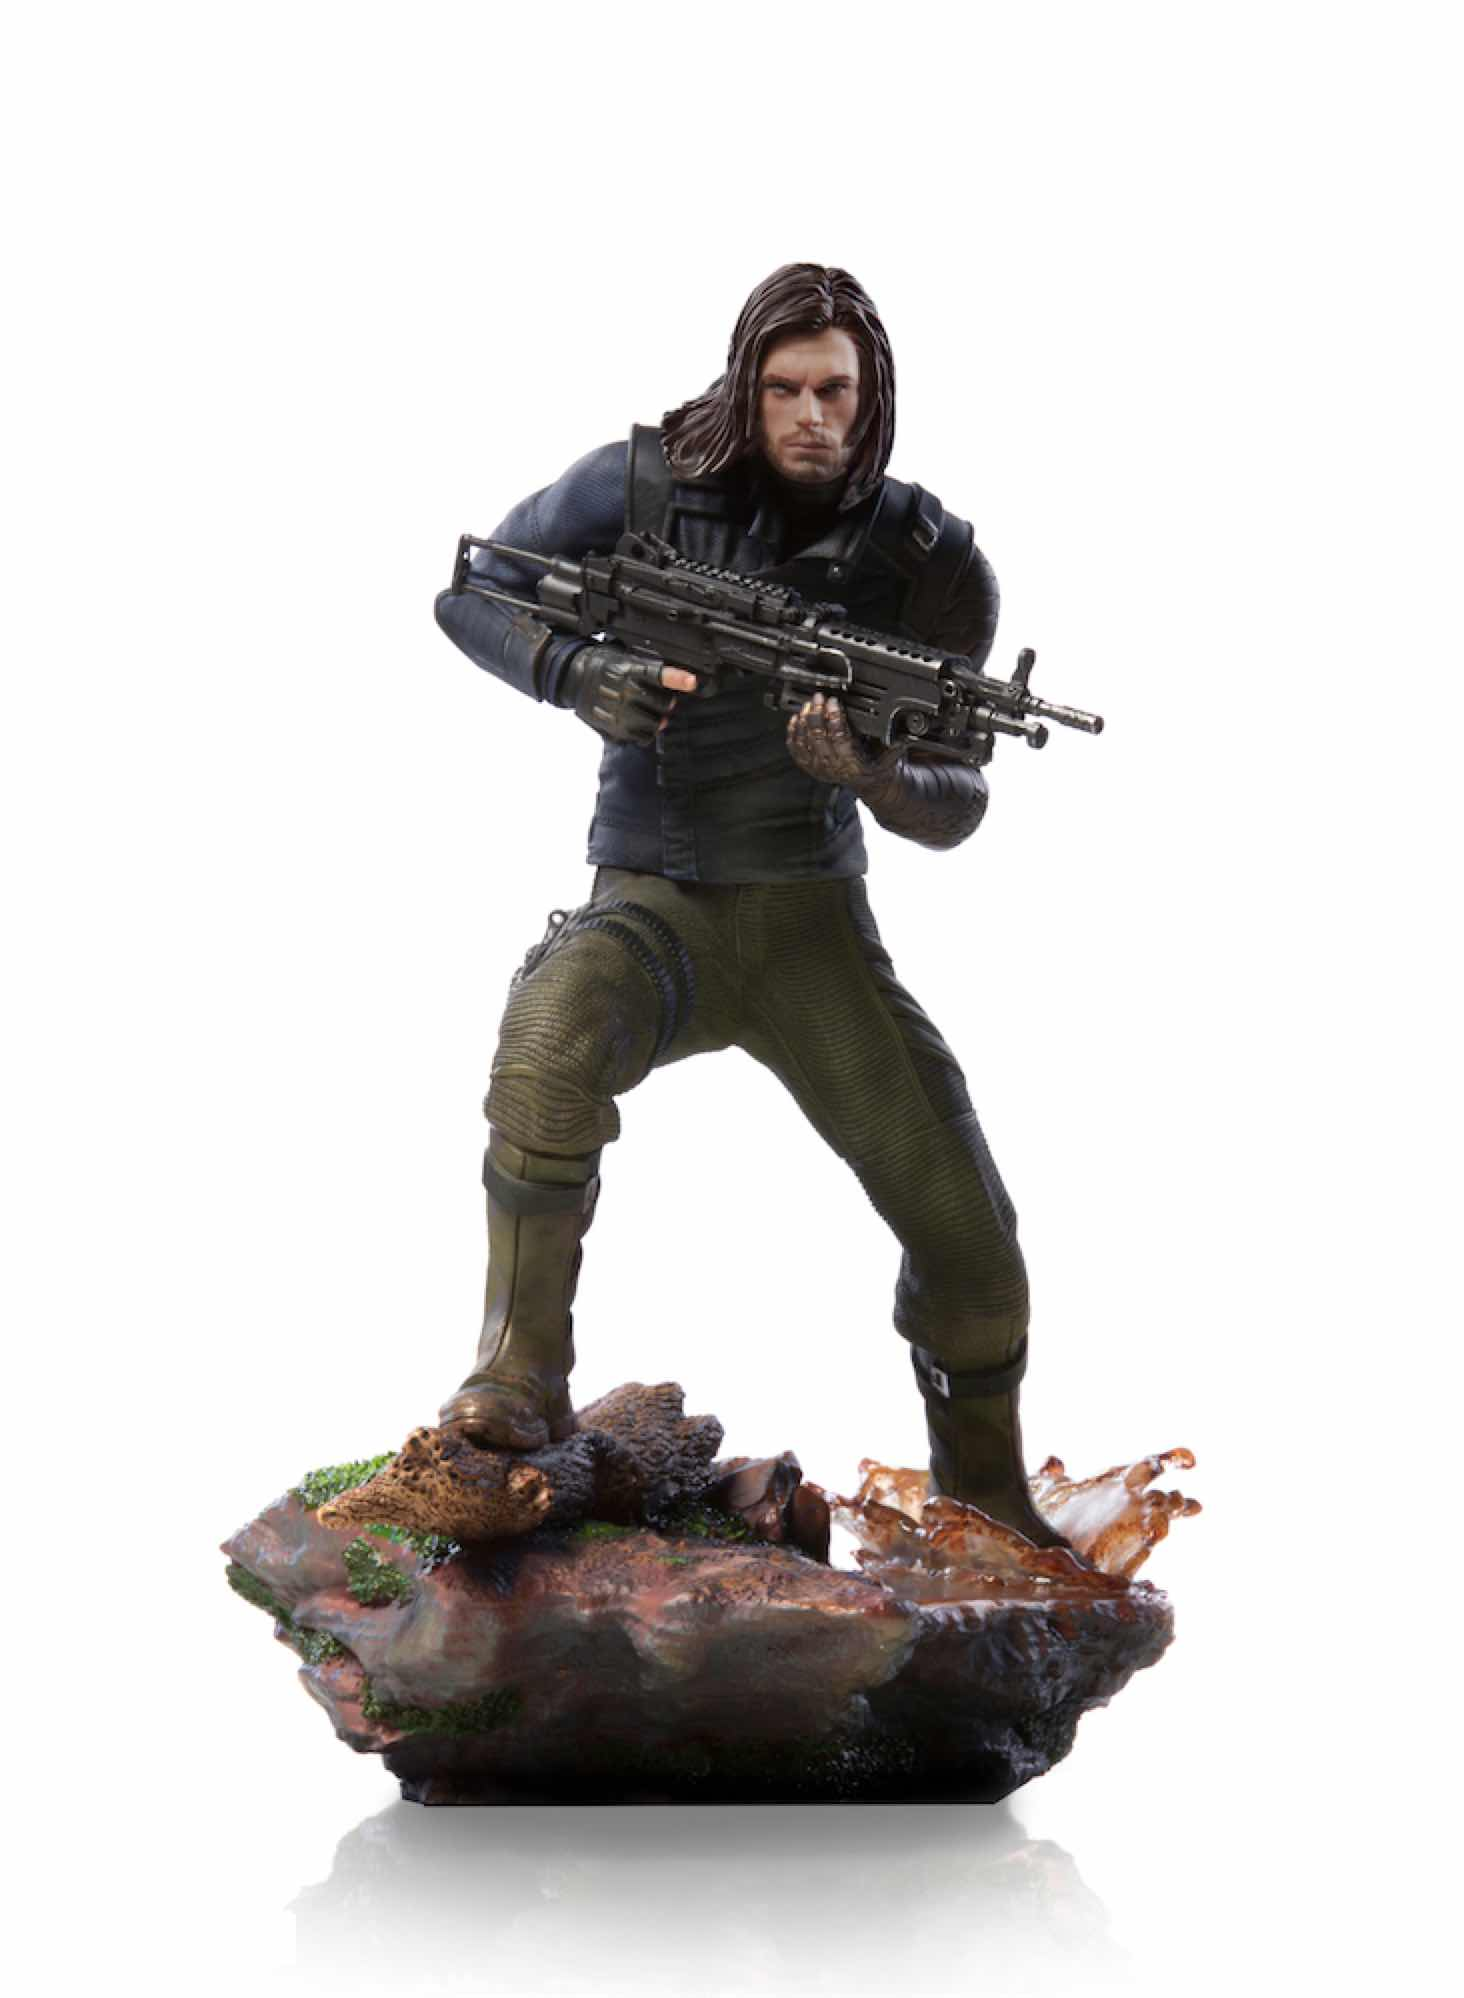 WINTER SOLDIER FIG 20 CM AVENGERS INFINITY WAR IRON STUDIOS BDS 1/10 ART SCALE